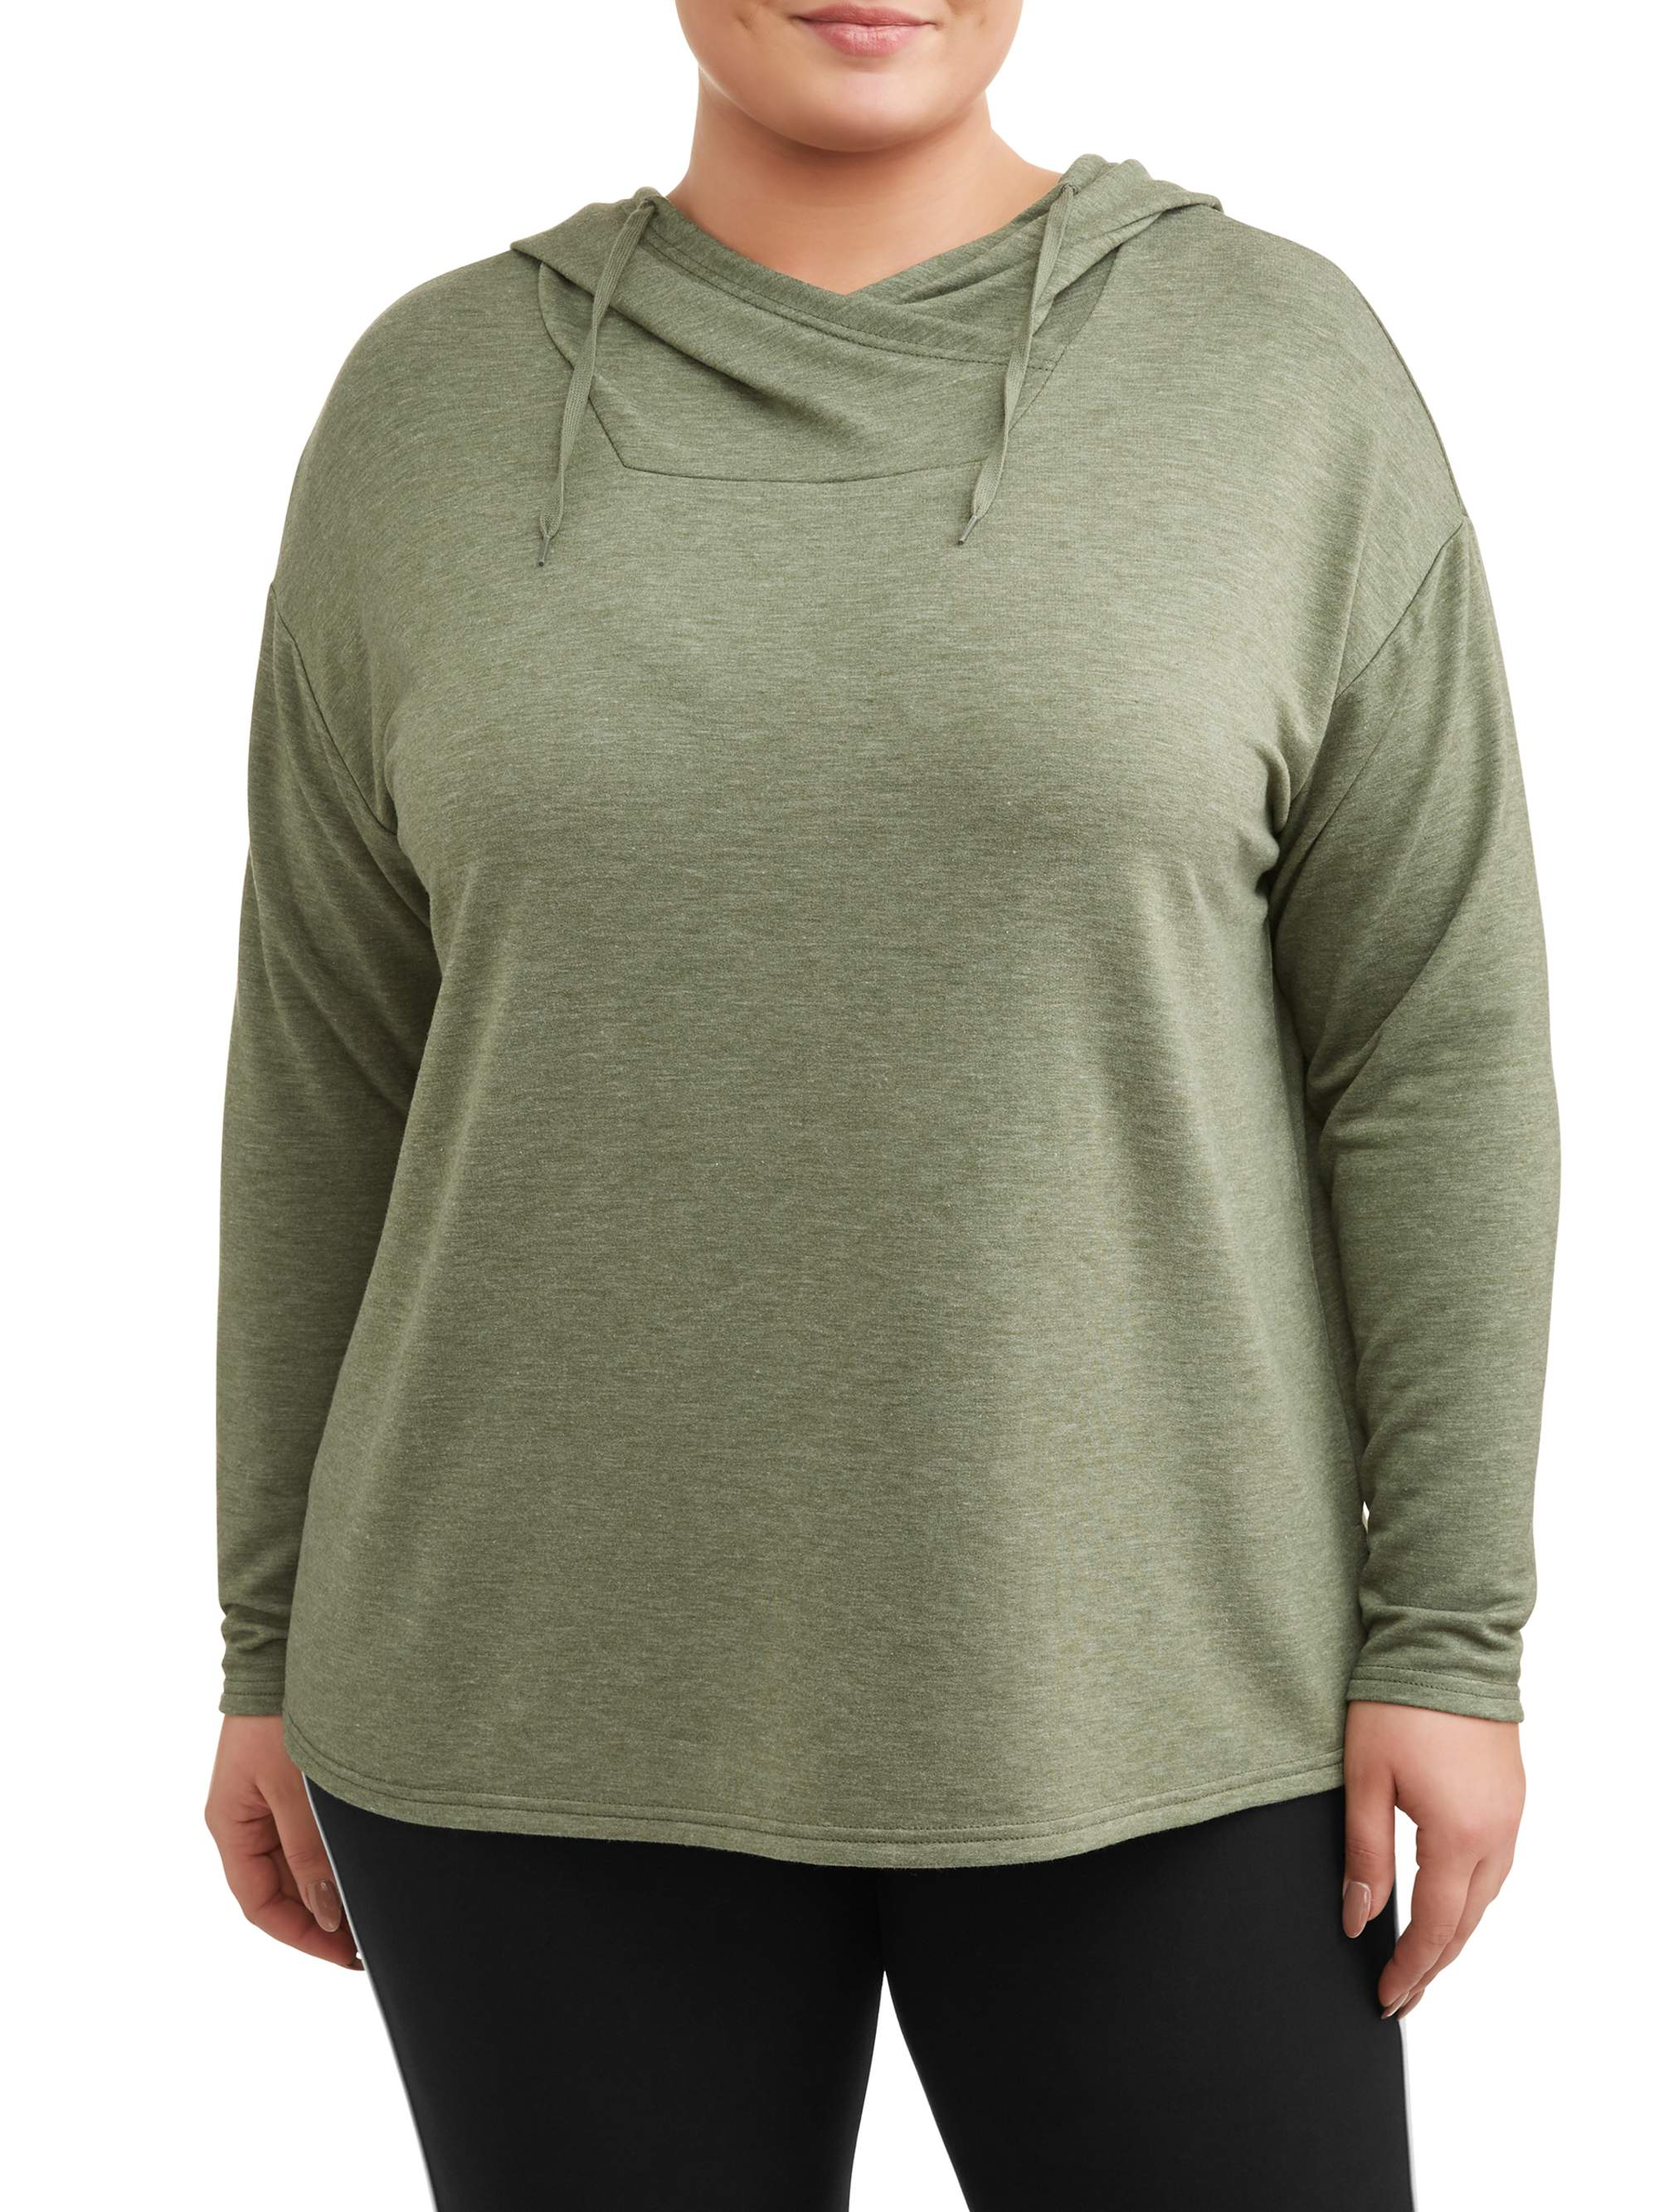 927d43cce9 Athletic Works - Women s Plus Size French Terry Tunic Hoodie - Walmart.com